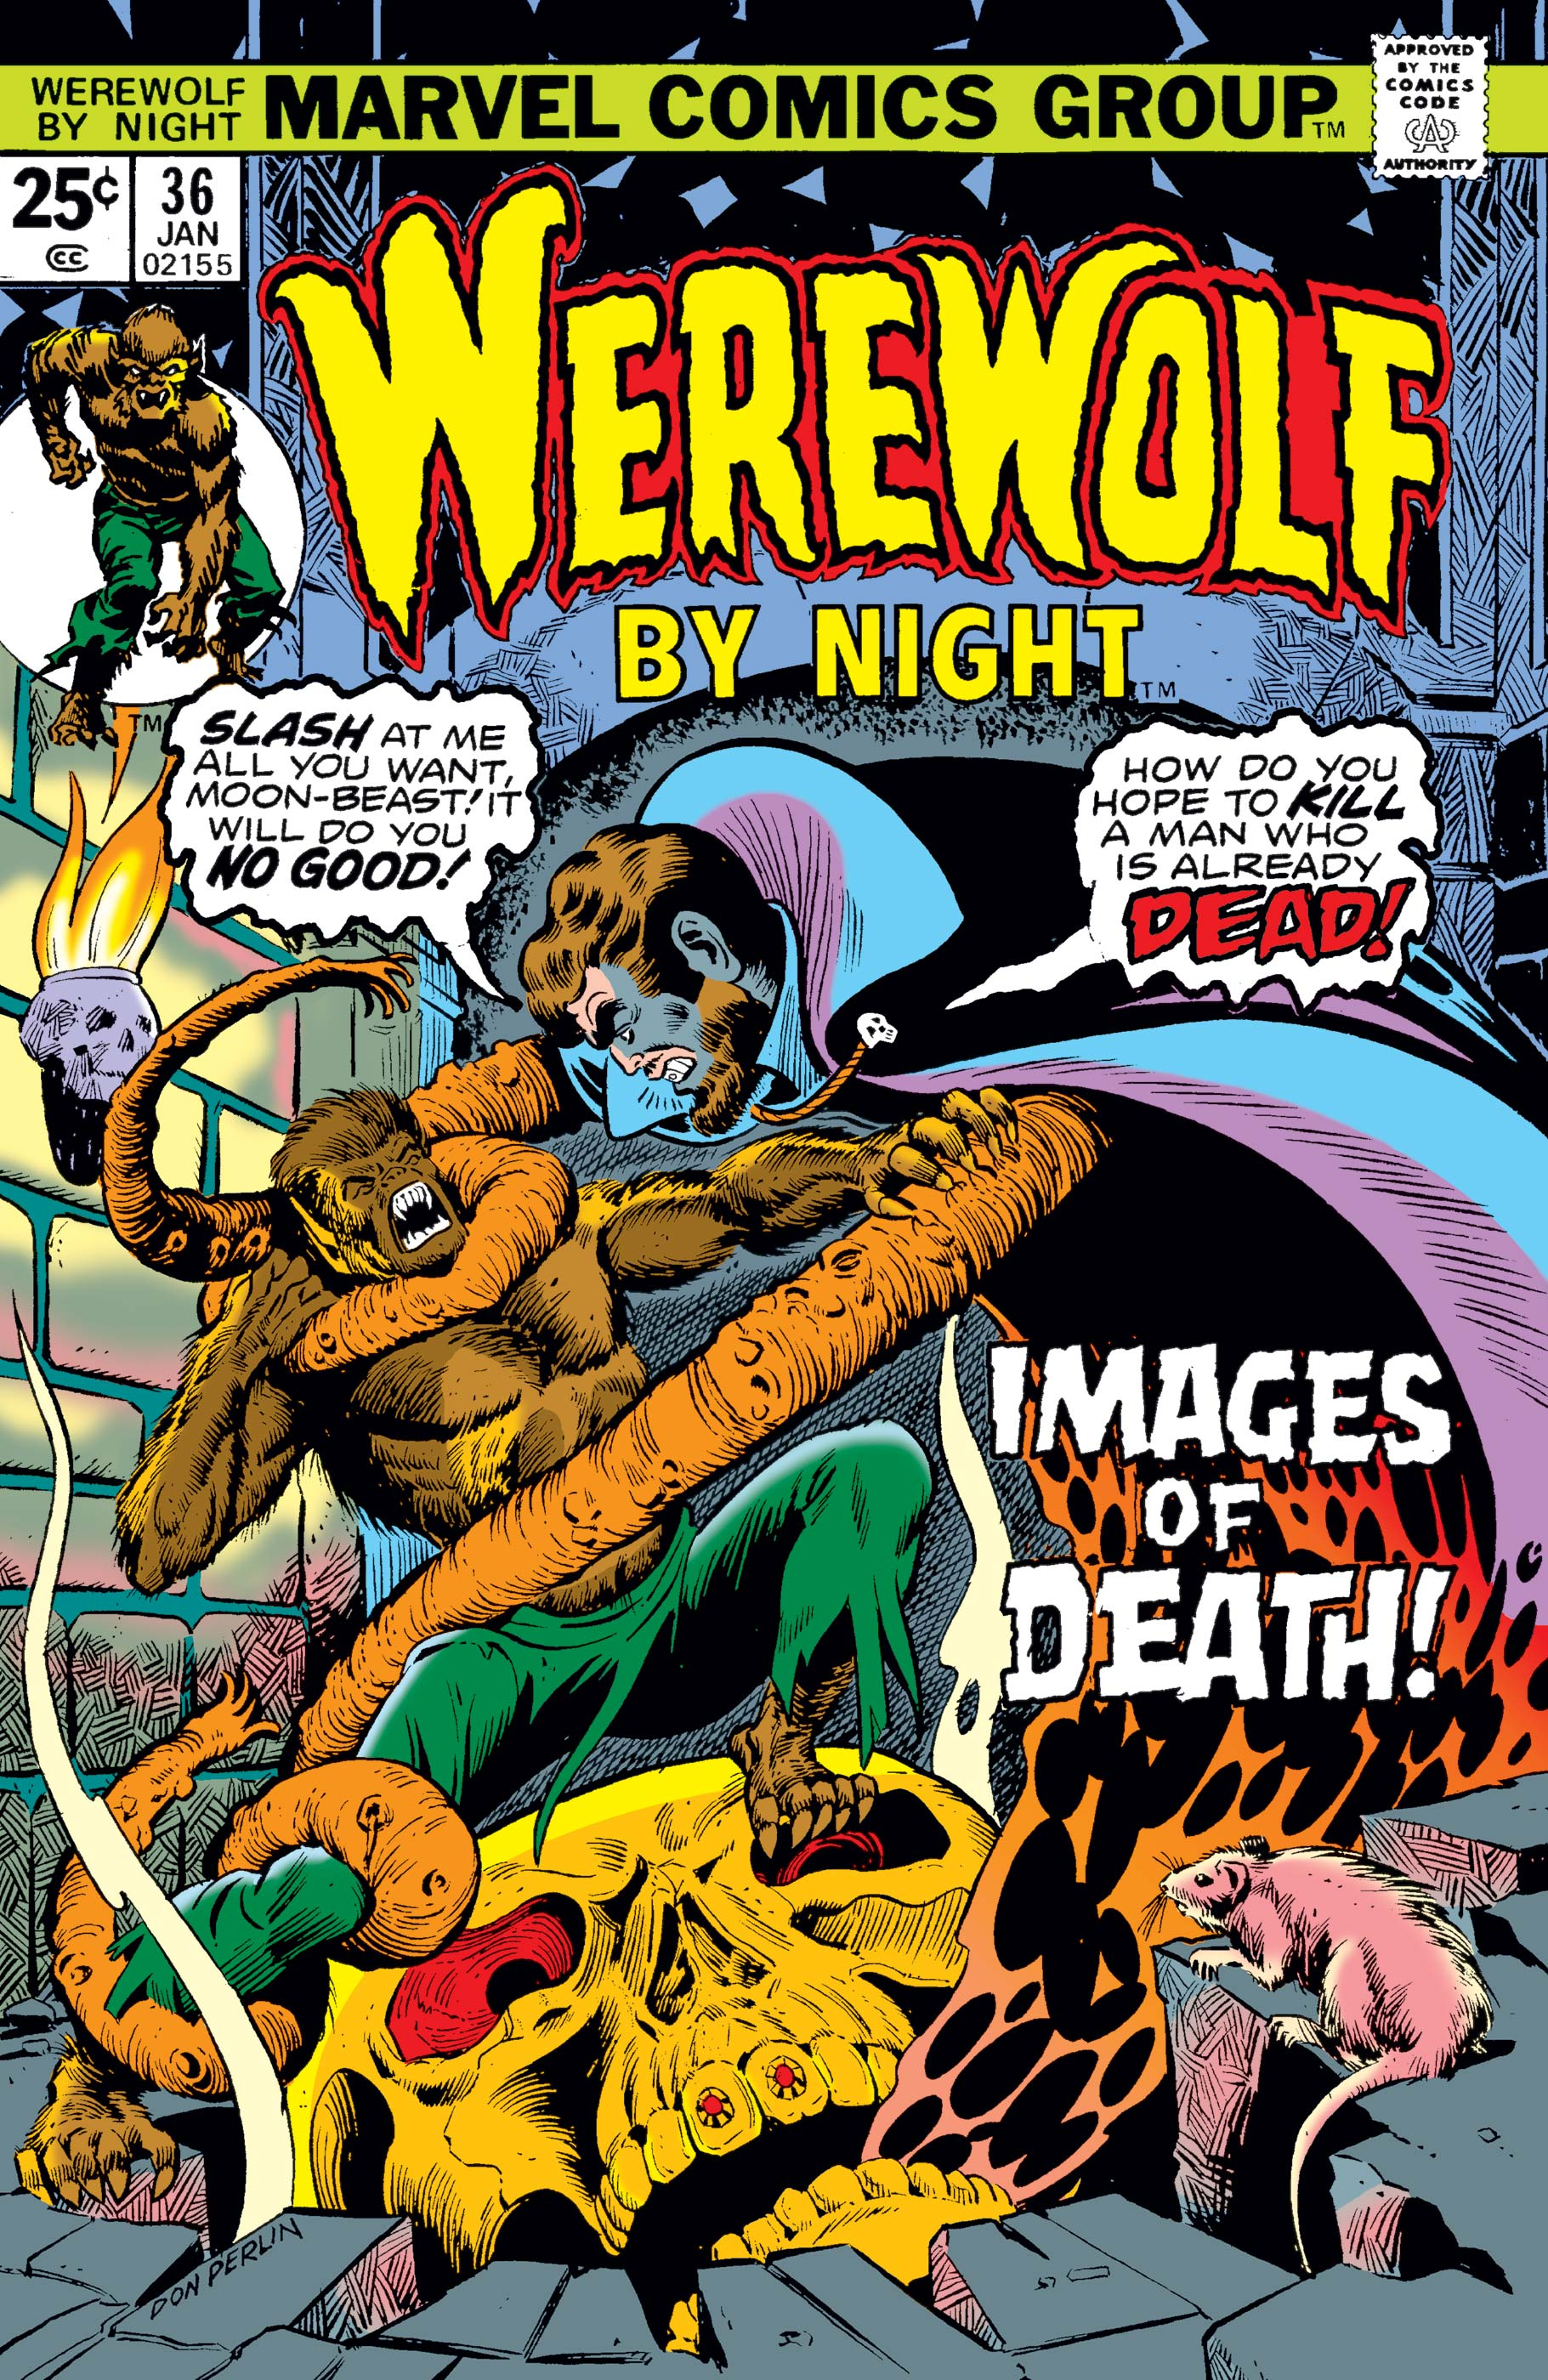 Werewolf By Night (1972) #36